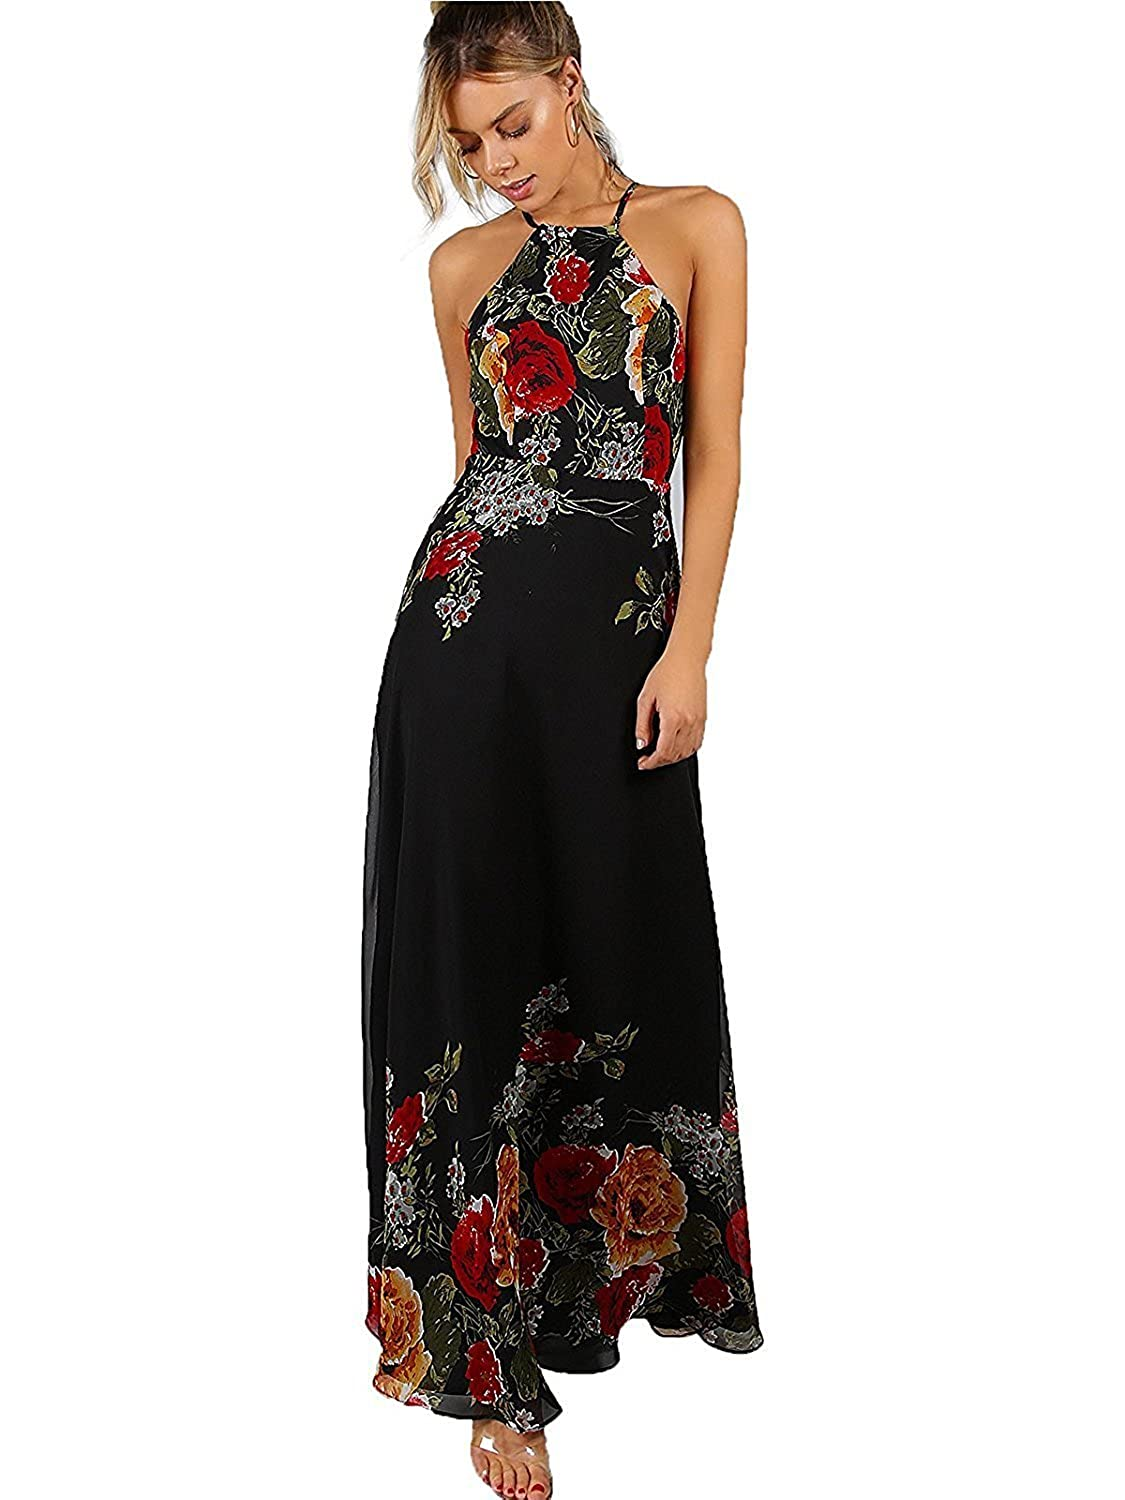 e899bf9ab1 Amazon.com  Floerns Women s Sleeveless Halter Neck Vintage Floral Print  Maxi Dress  Clothing